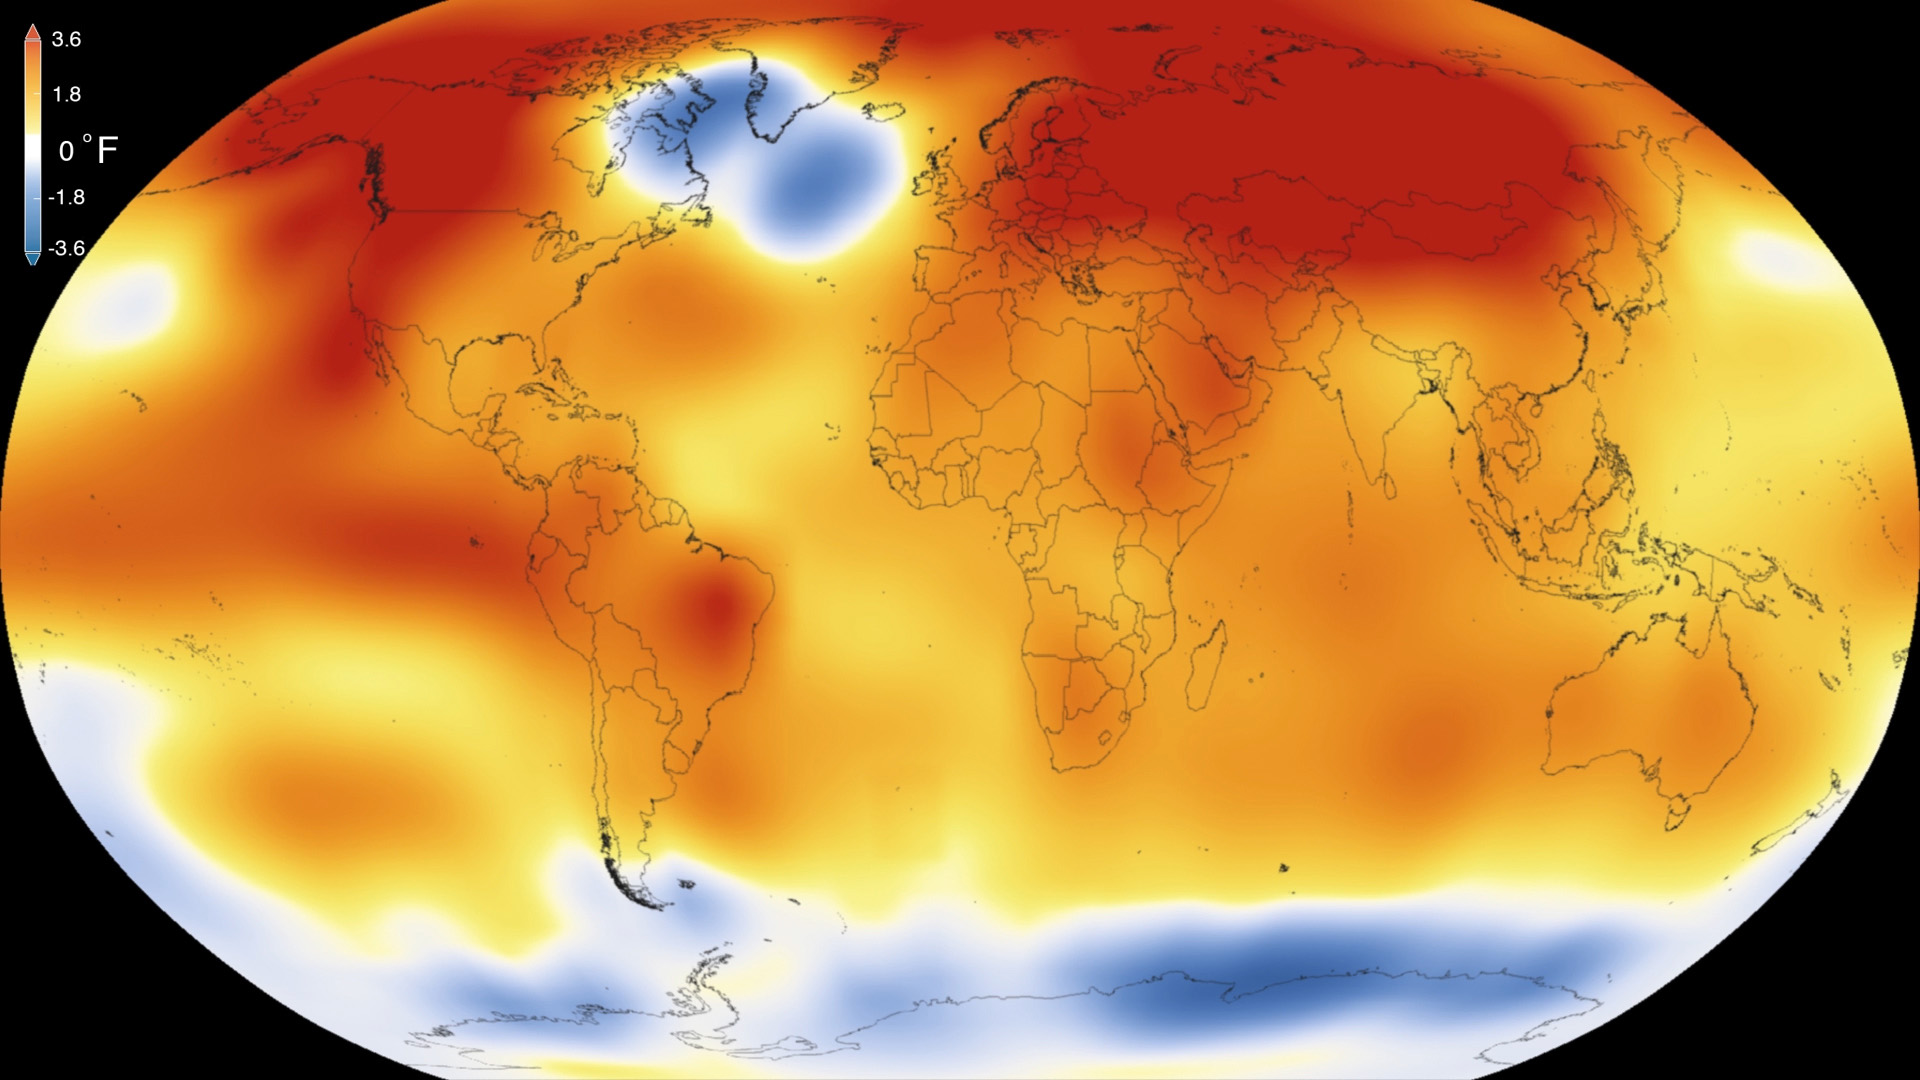 A heat map of the globe showing the hottest and coolest locations. Much of the world is in red.